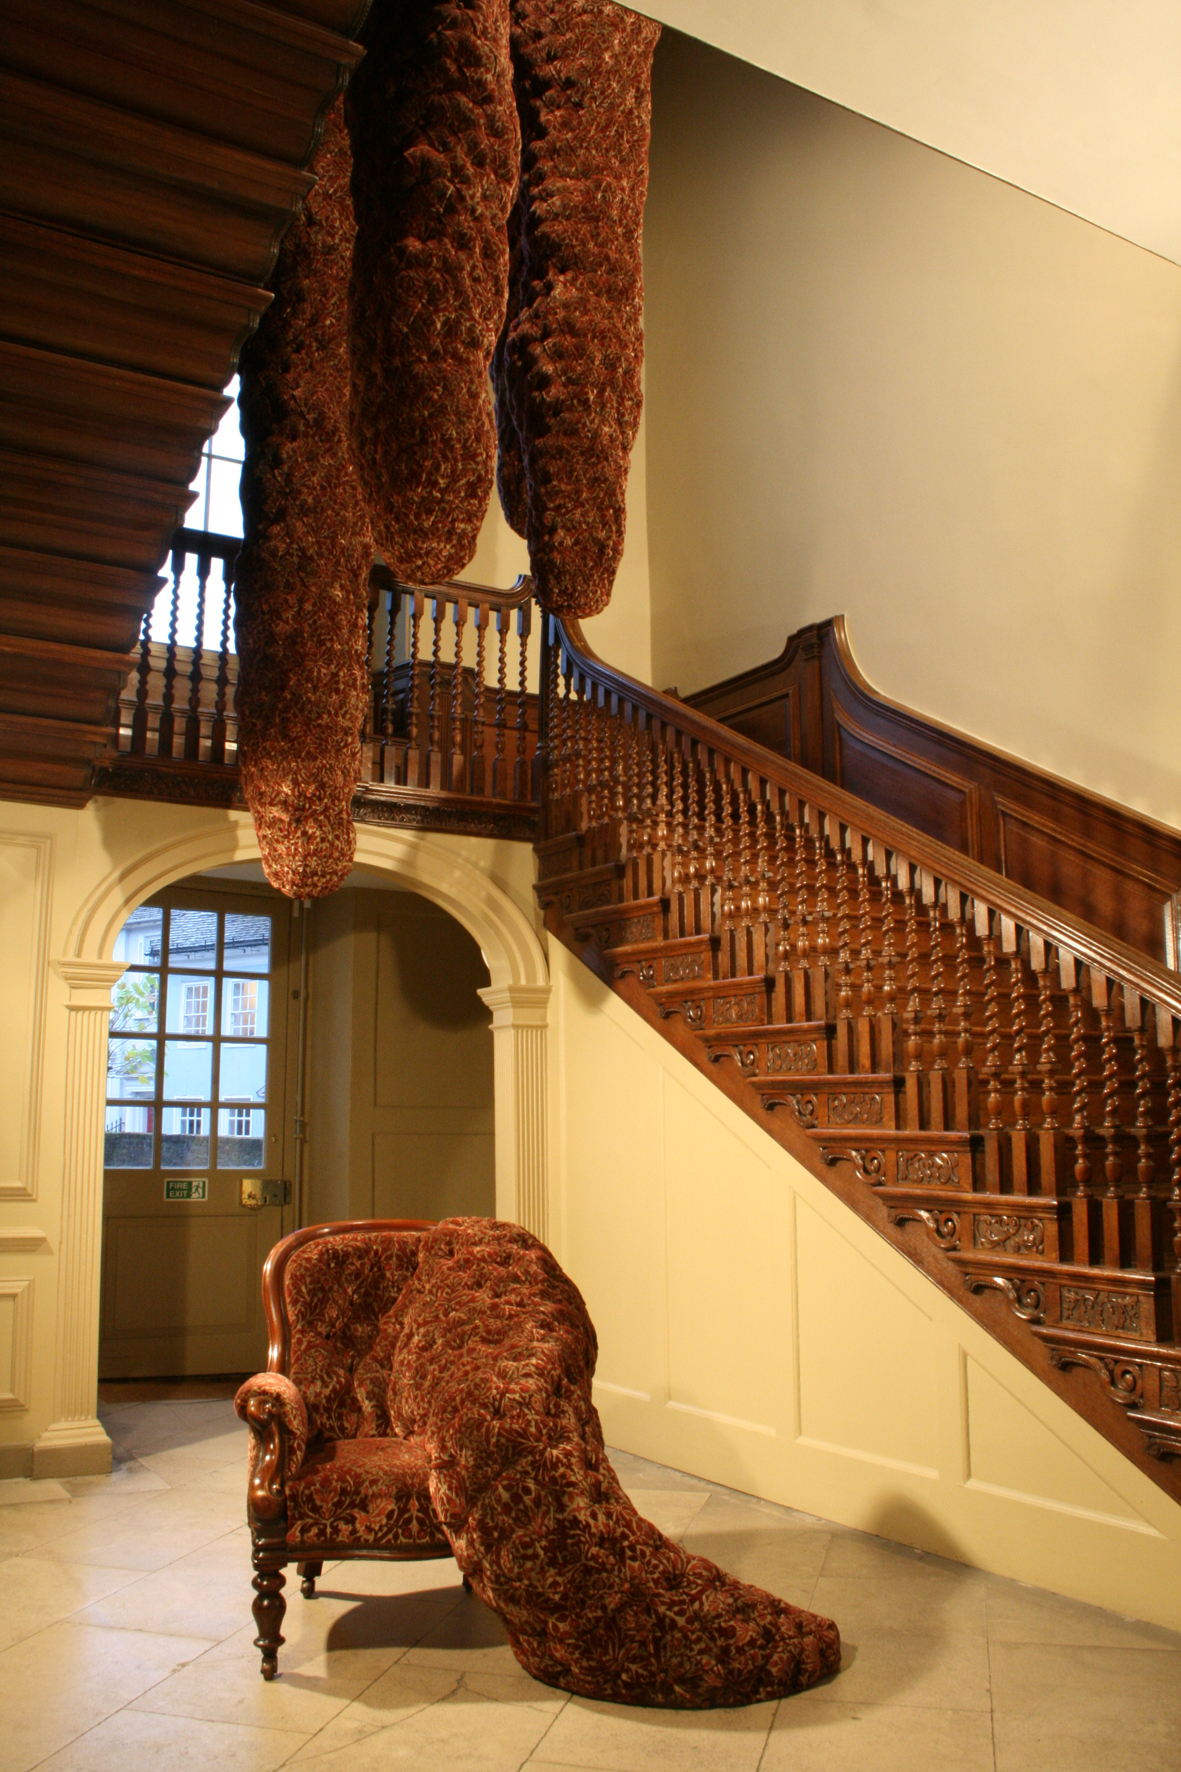 A period staircase with a red upholstered armchair with amorphous bulging out of one side at the foot of the staircase. More long upholstered forms hang down the centre of the stairwell.